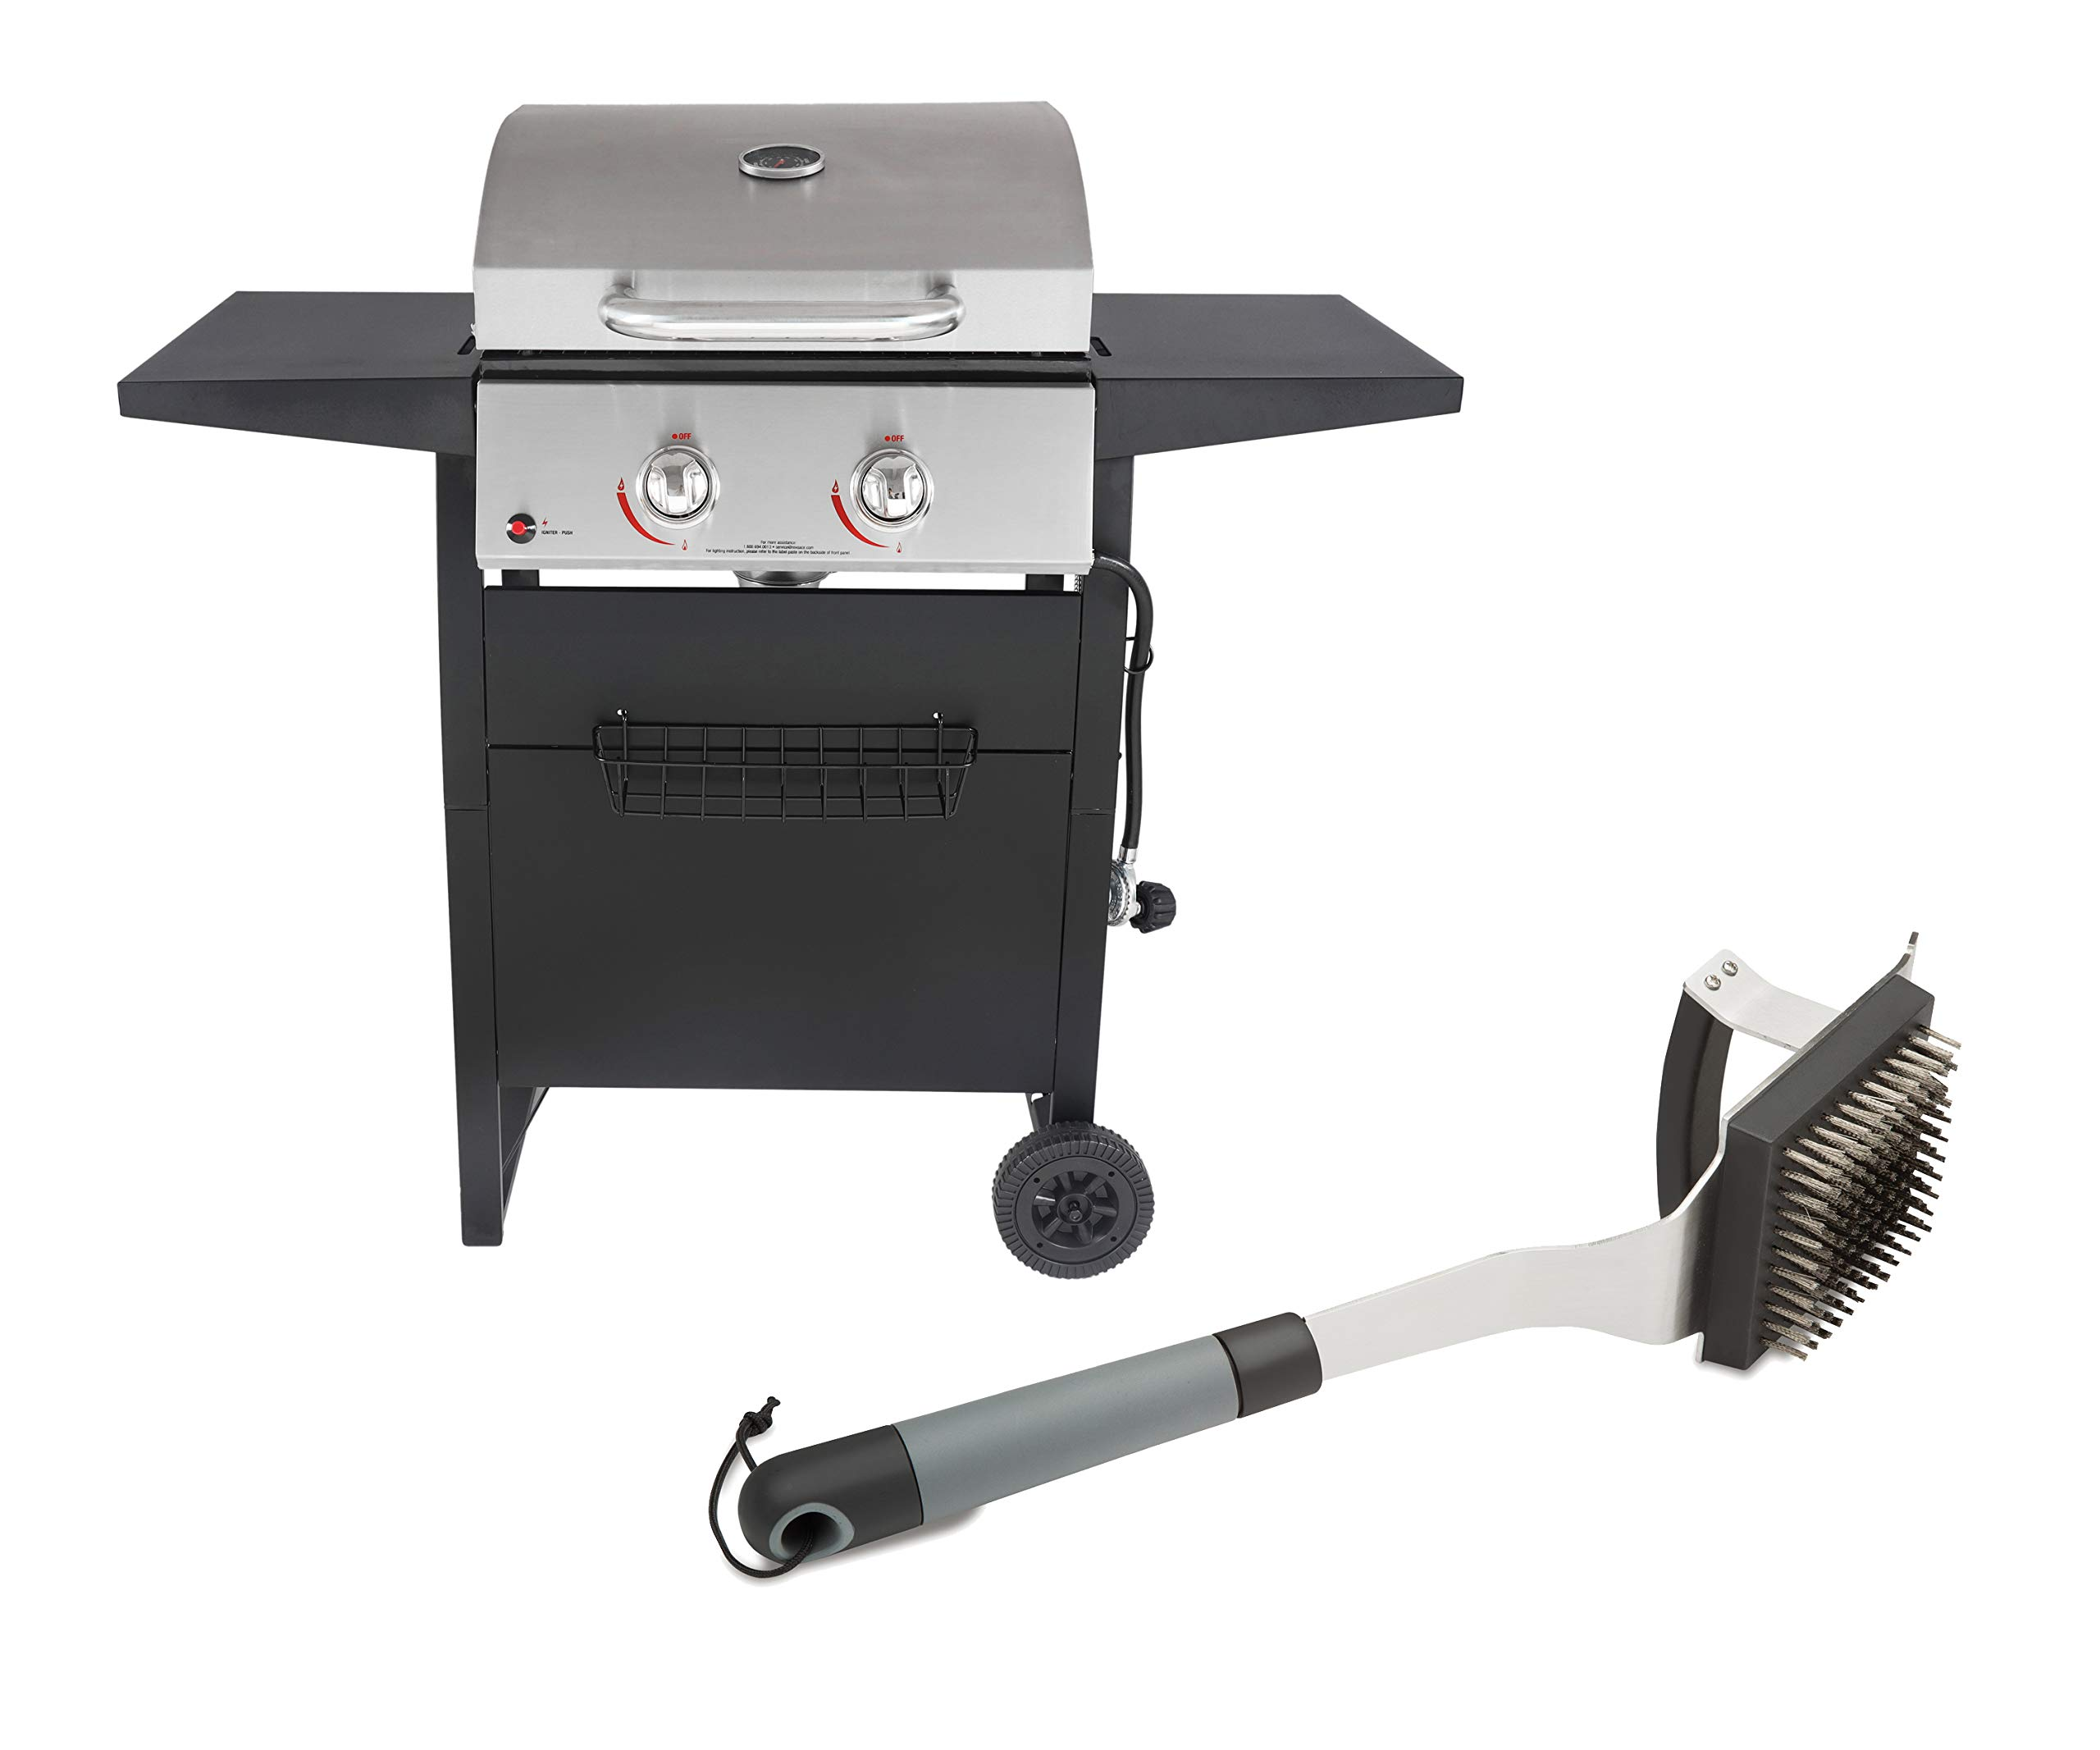 RevoAce 2-Burner Gas Grill with Stainless Steel Bundle with Cuisinart Dual Grip Barbecue Grill Brush and Scraper by RevoAce + Cuisinart